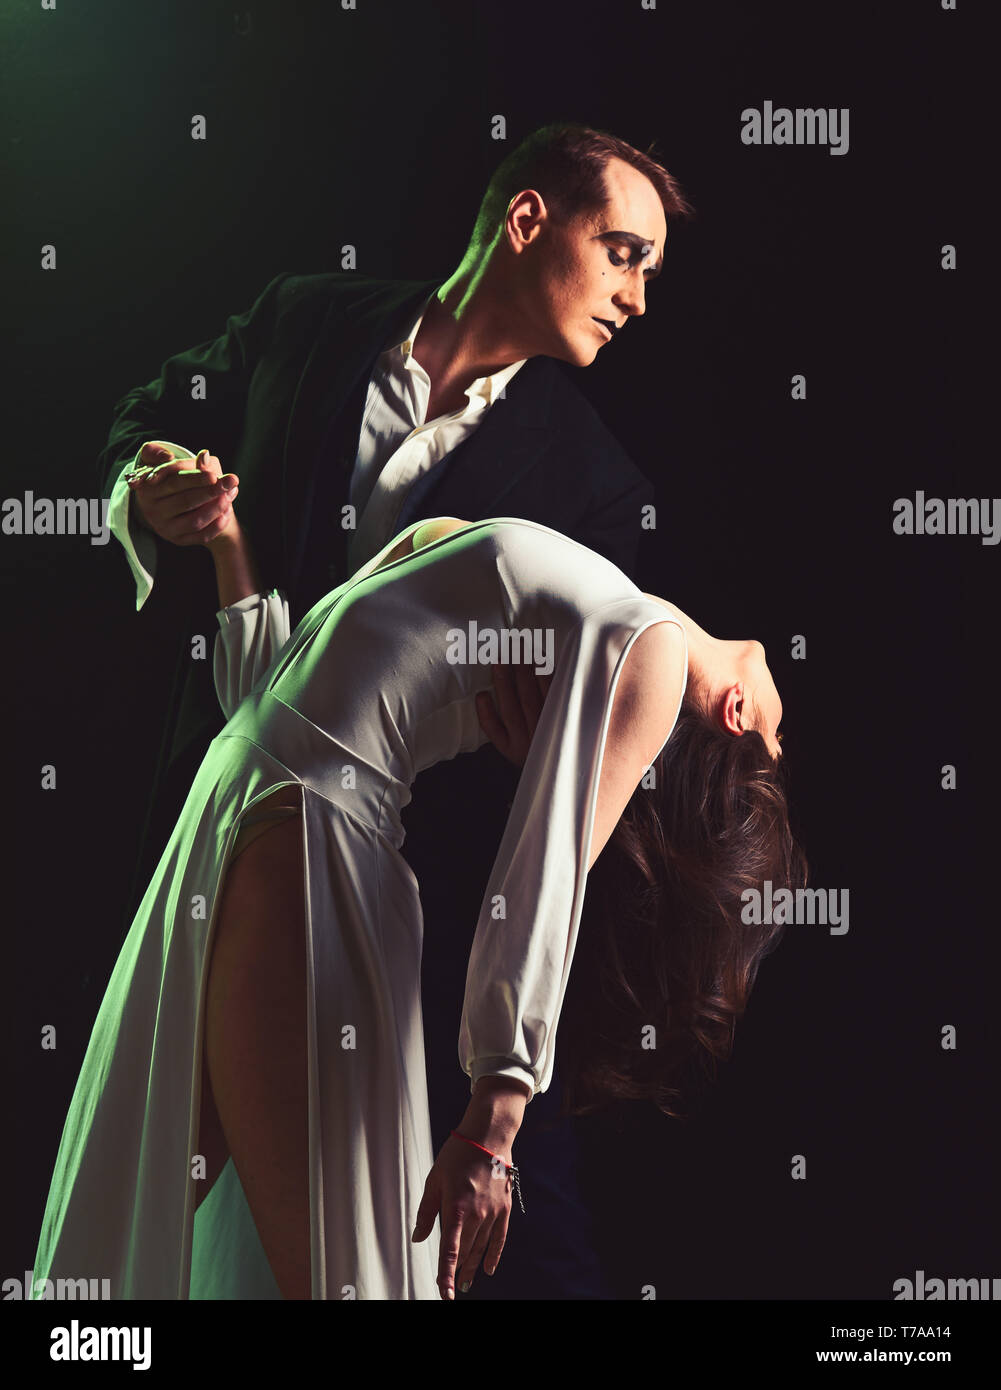 More than a little romance. Theatre actors miming through body motions. Couple of mime artists perform romance on stage. Couple in love with mime - Stock Image